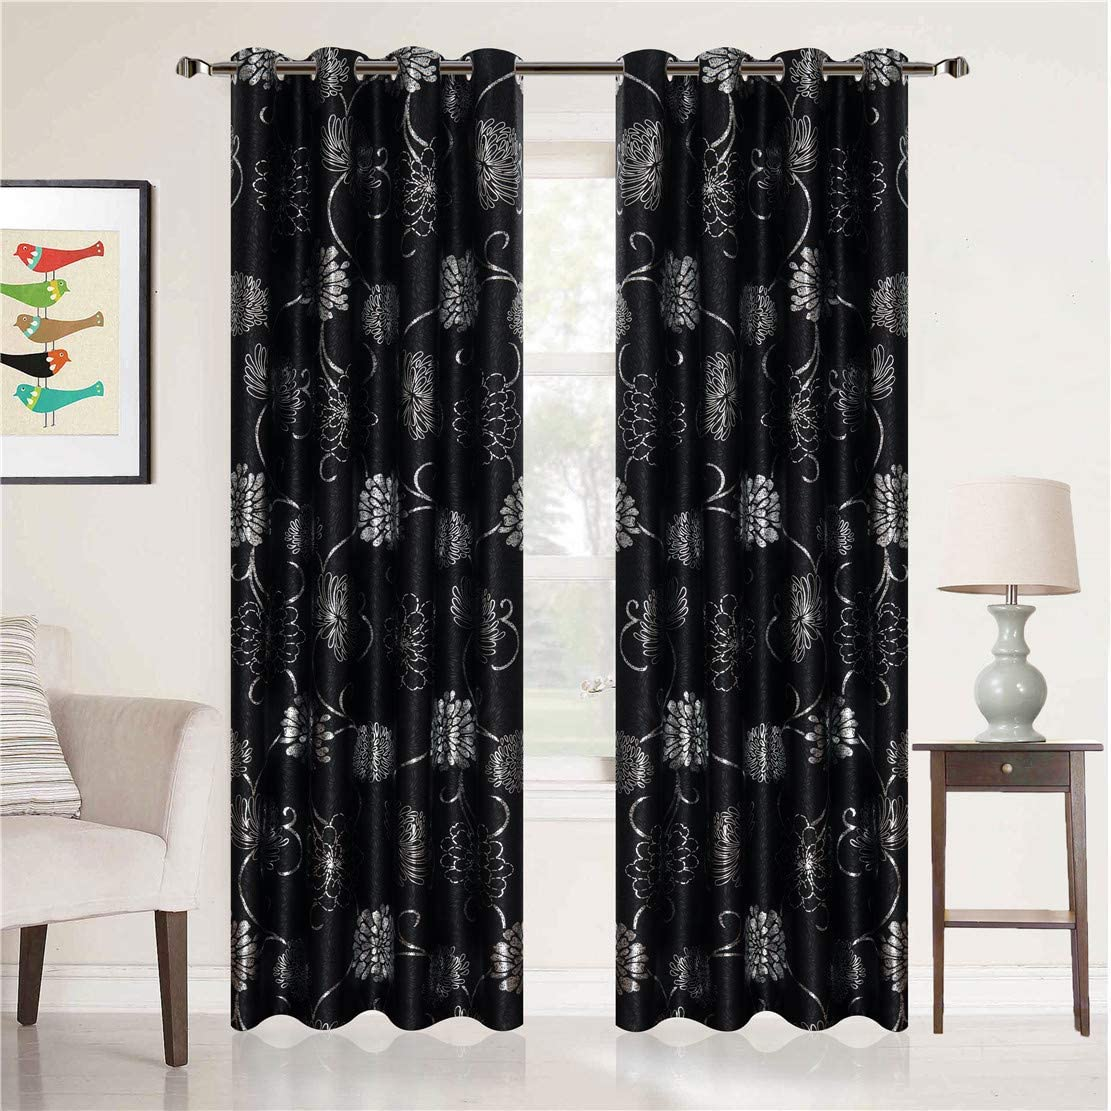 MYRU 2 Panels Black and Sliver Blackout Curtains for Bedroom, Luxury Flower Curtains for Living Room Silver Flower,2 x 54 x 96 Inch